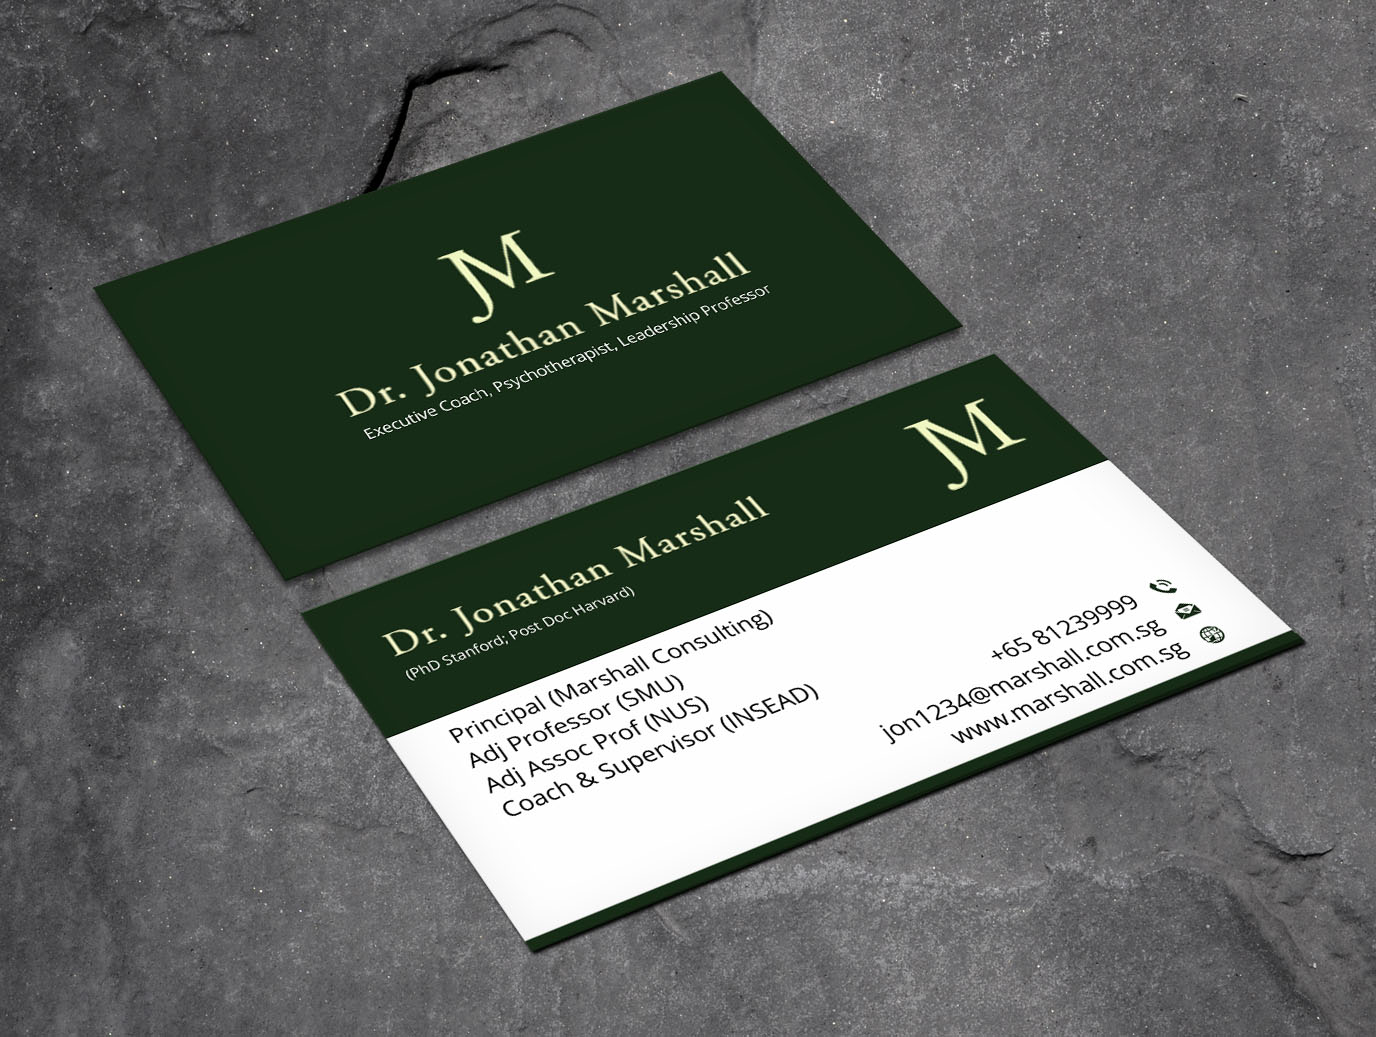 Upmarket elegant psychology business card design for marshall business card design by xpert for marshall consulting pte ltd design 17380590 colourmoves